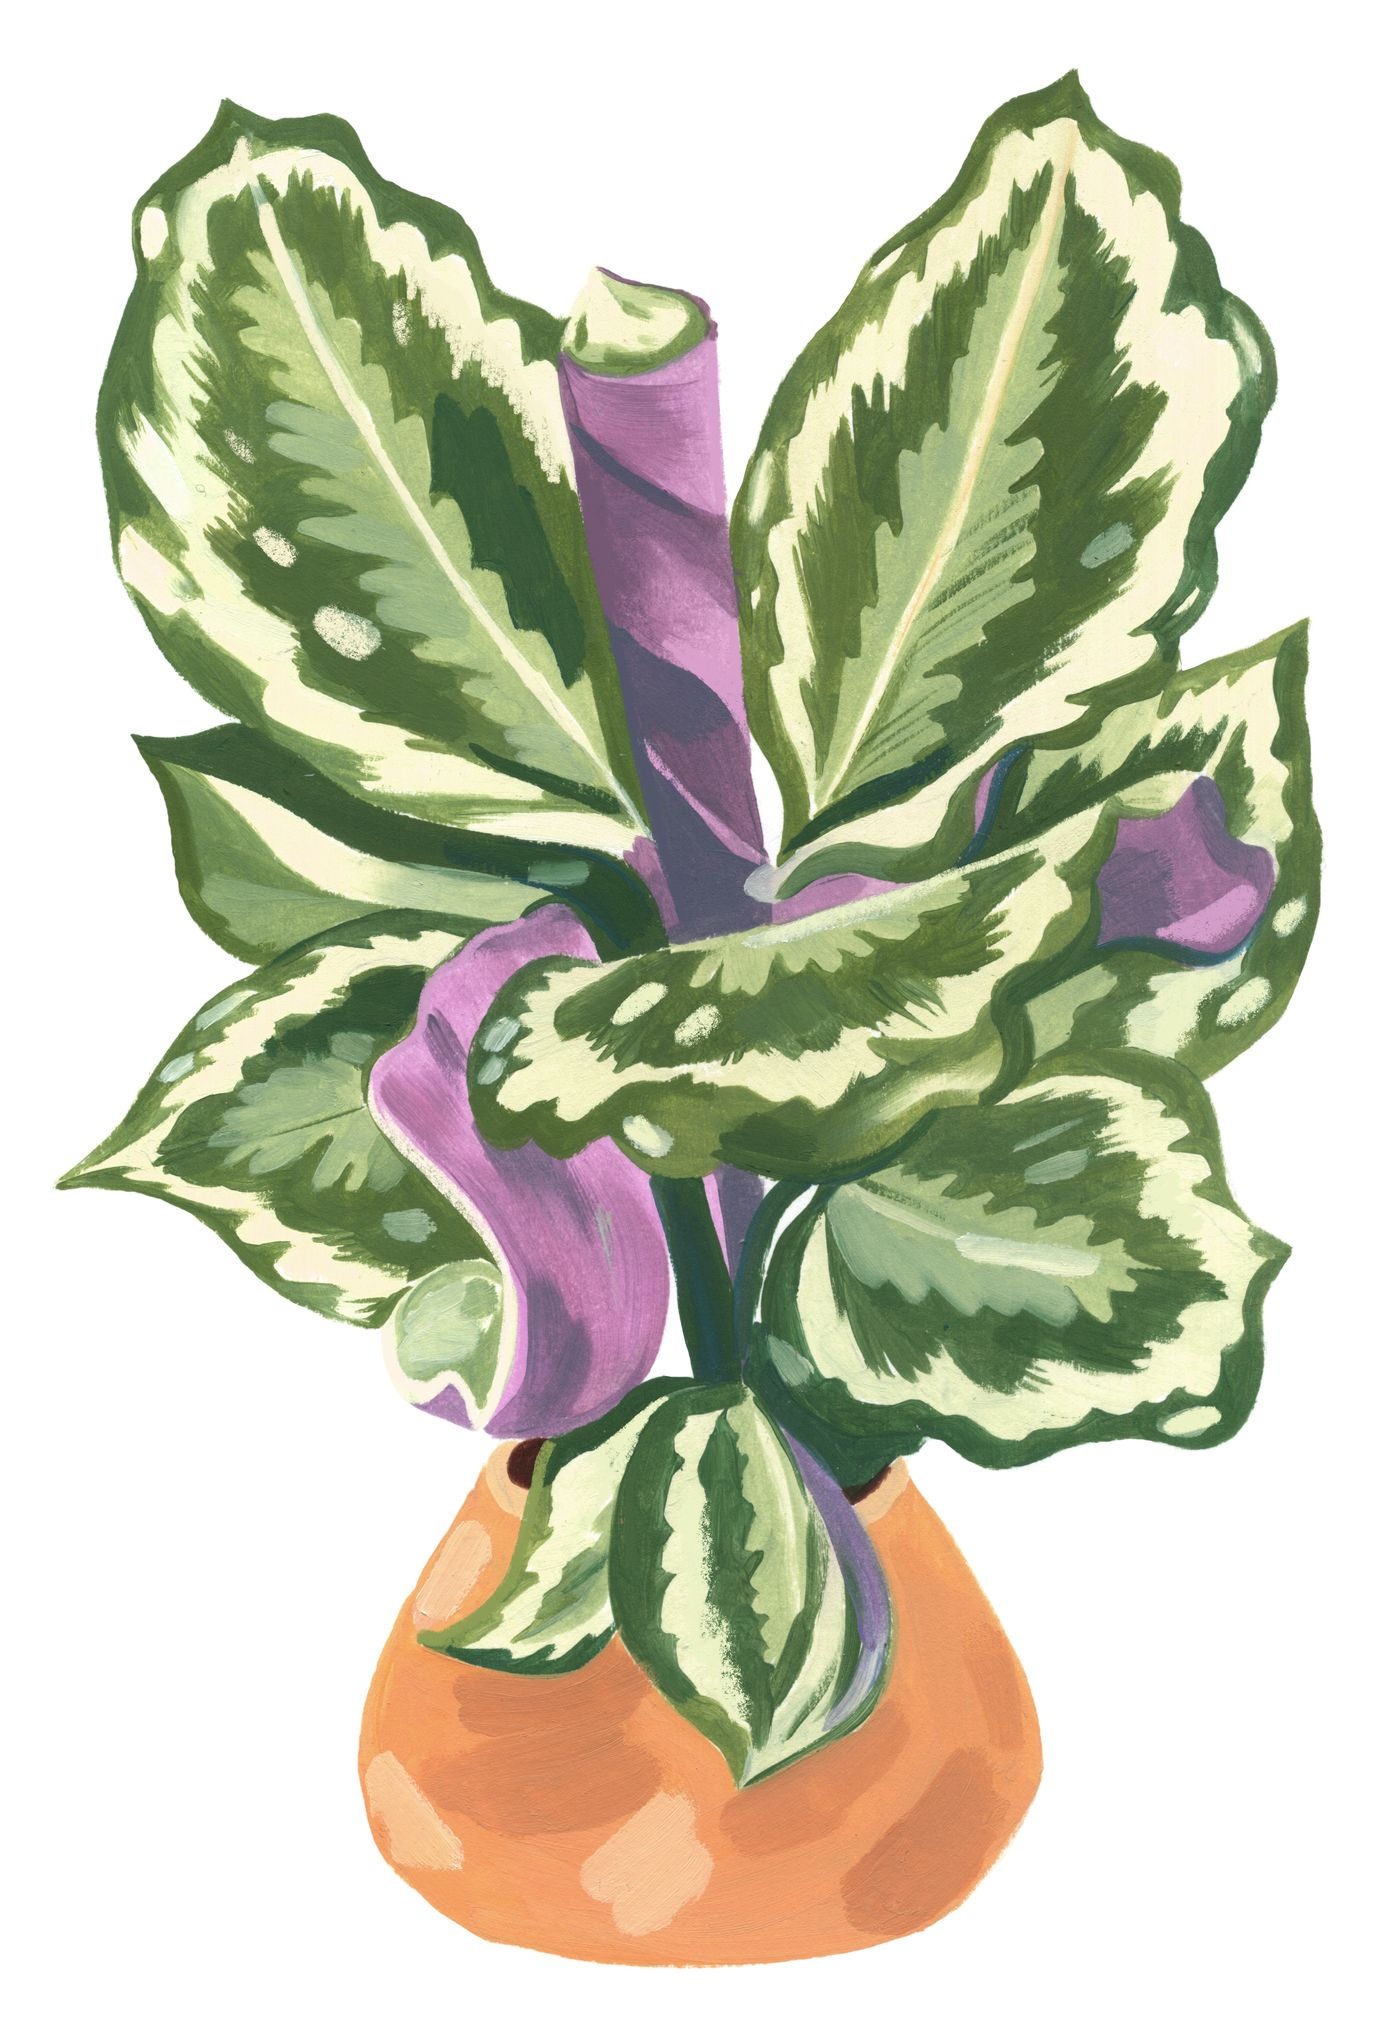 Garance-Illustration-Grace-Helmer-Plantfulness-Calathea-Ornata